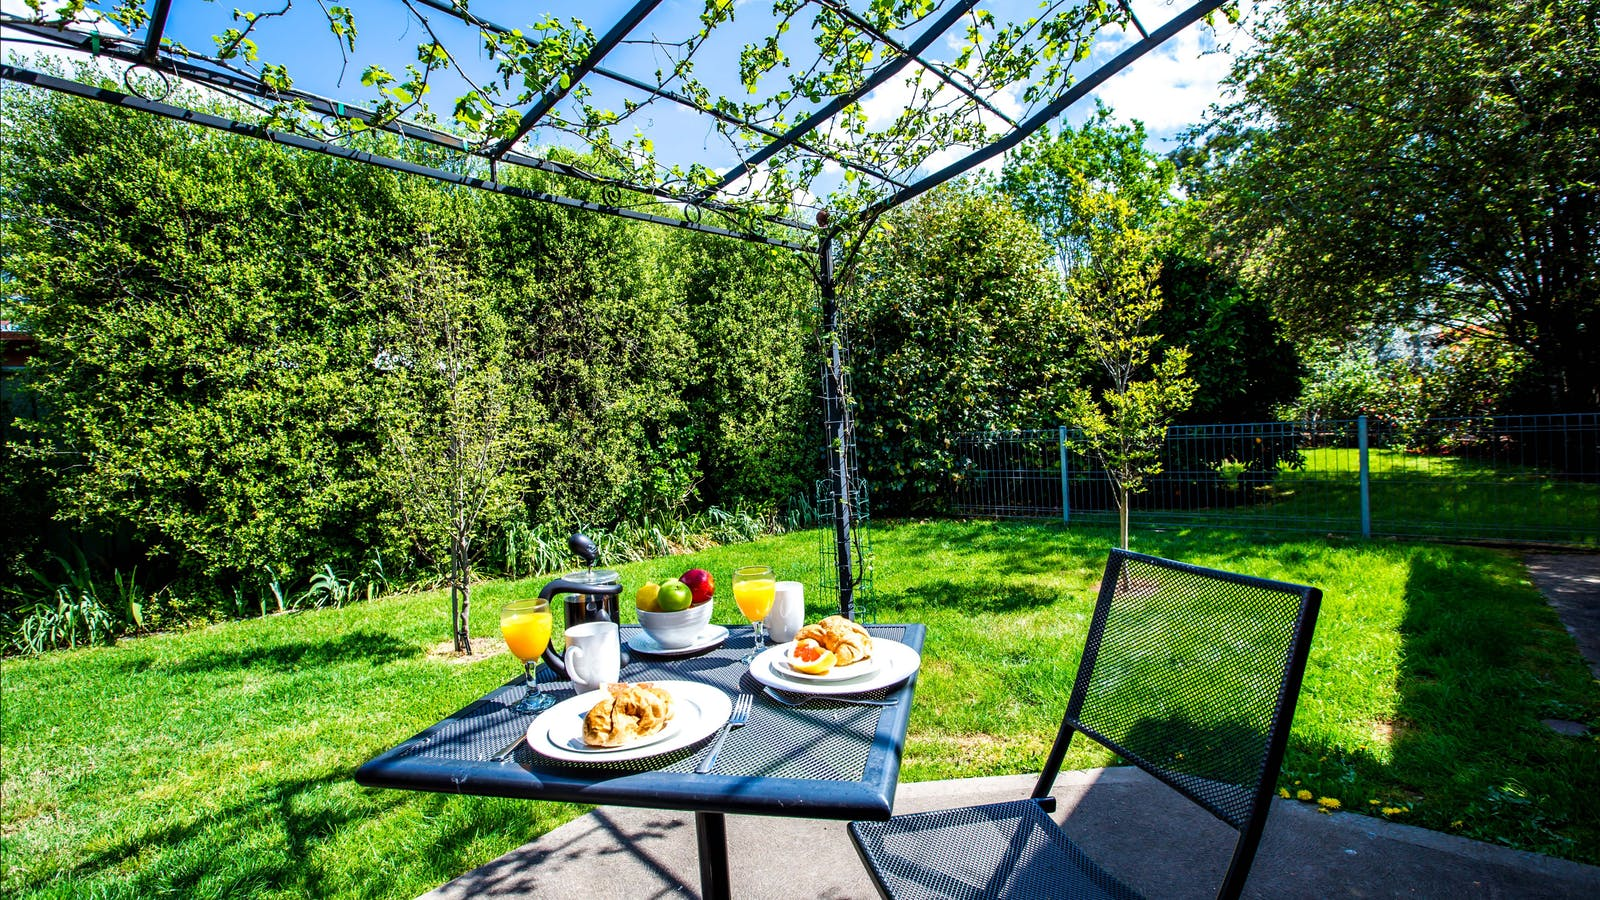 Private fully fenced garden just for you